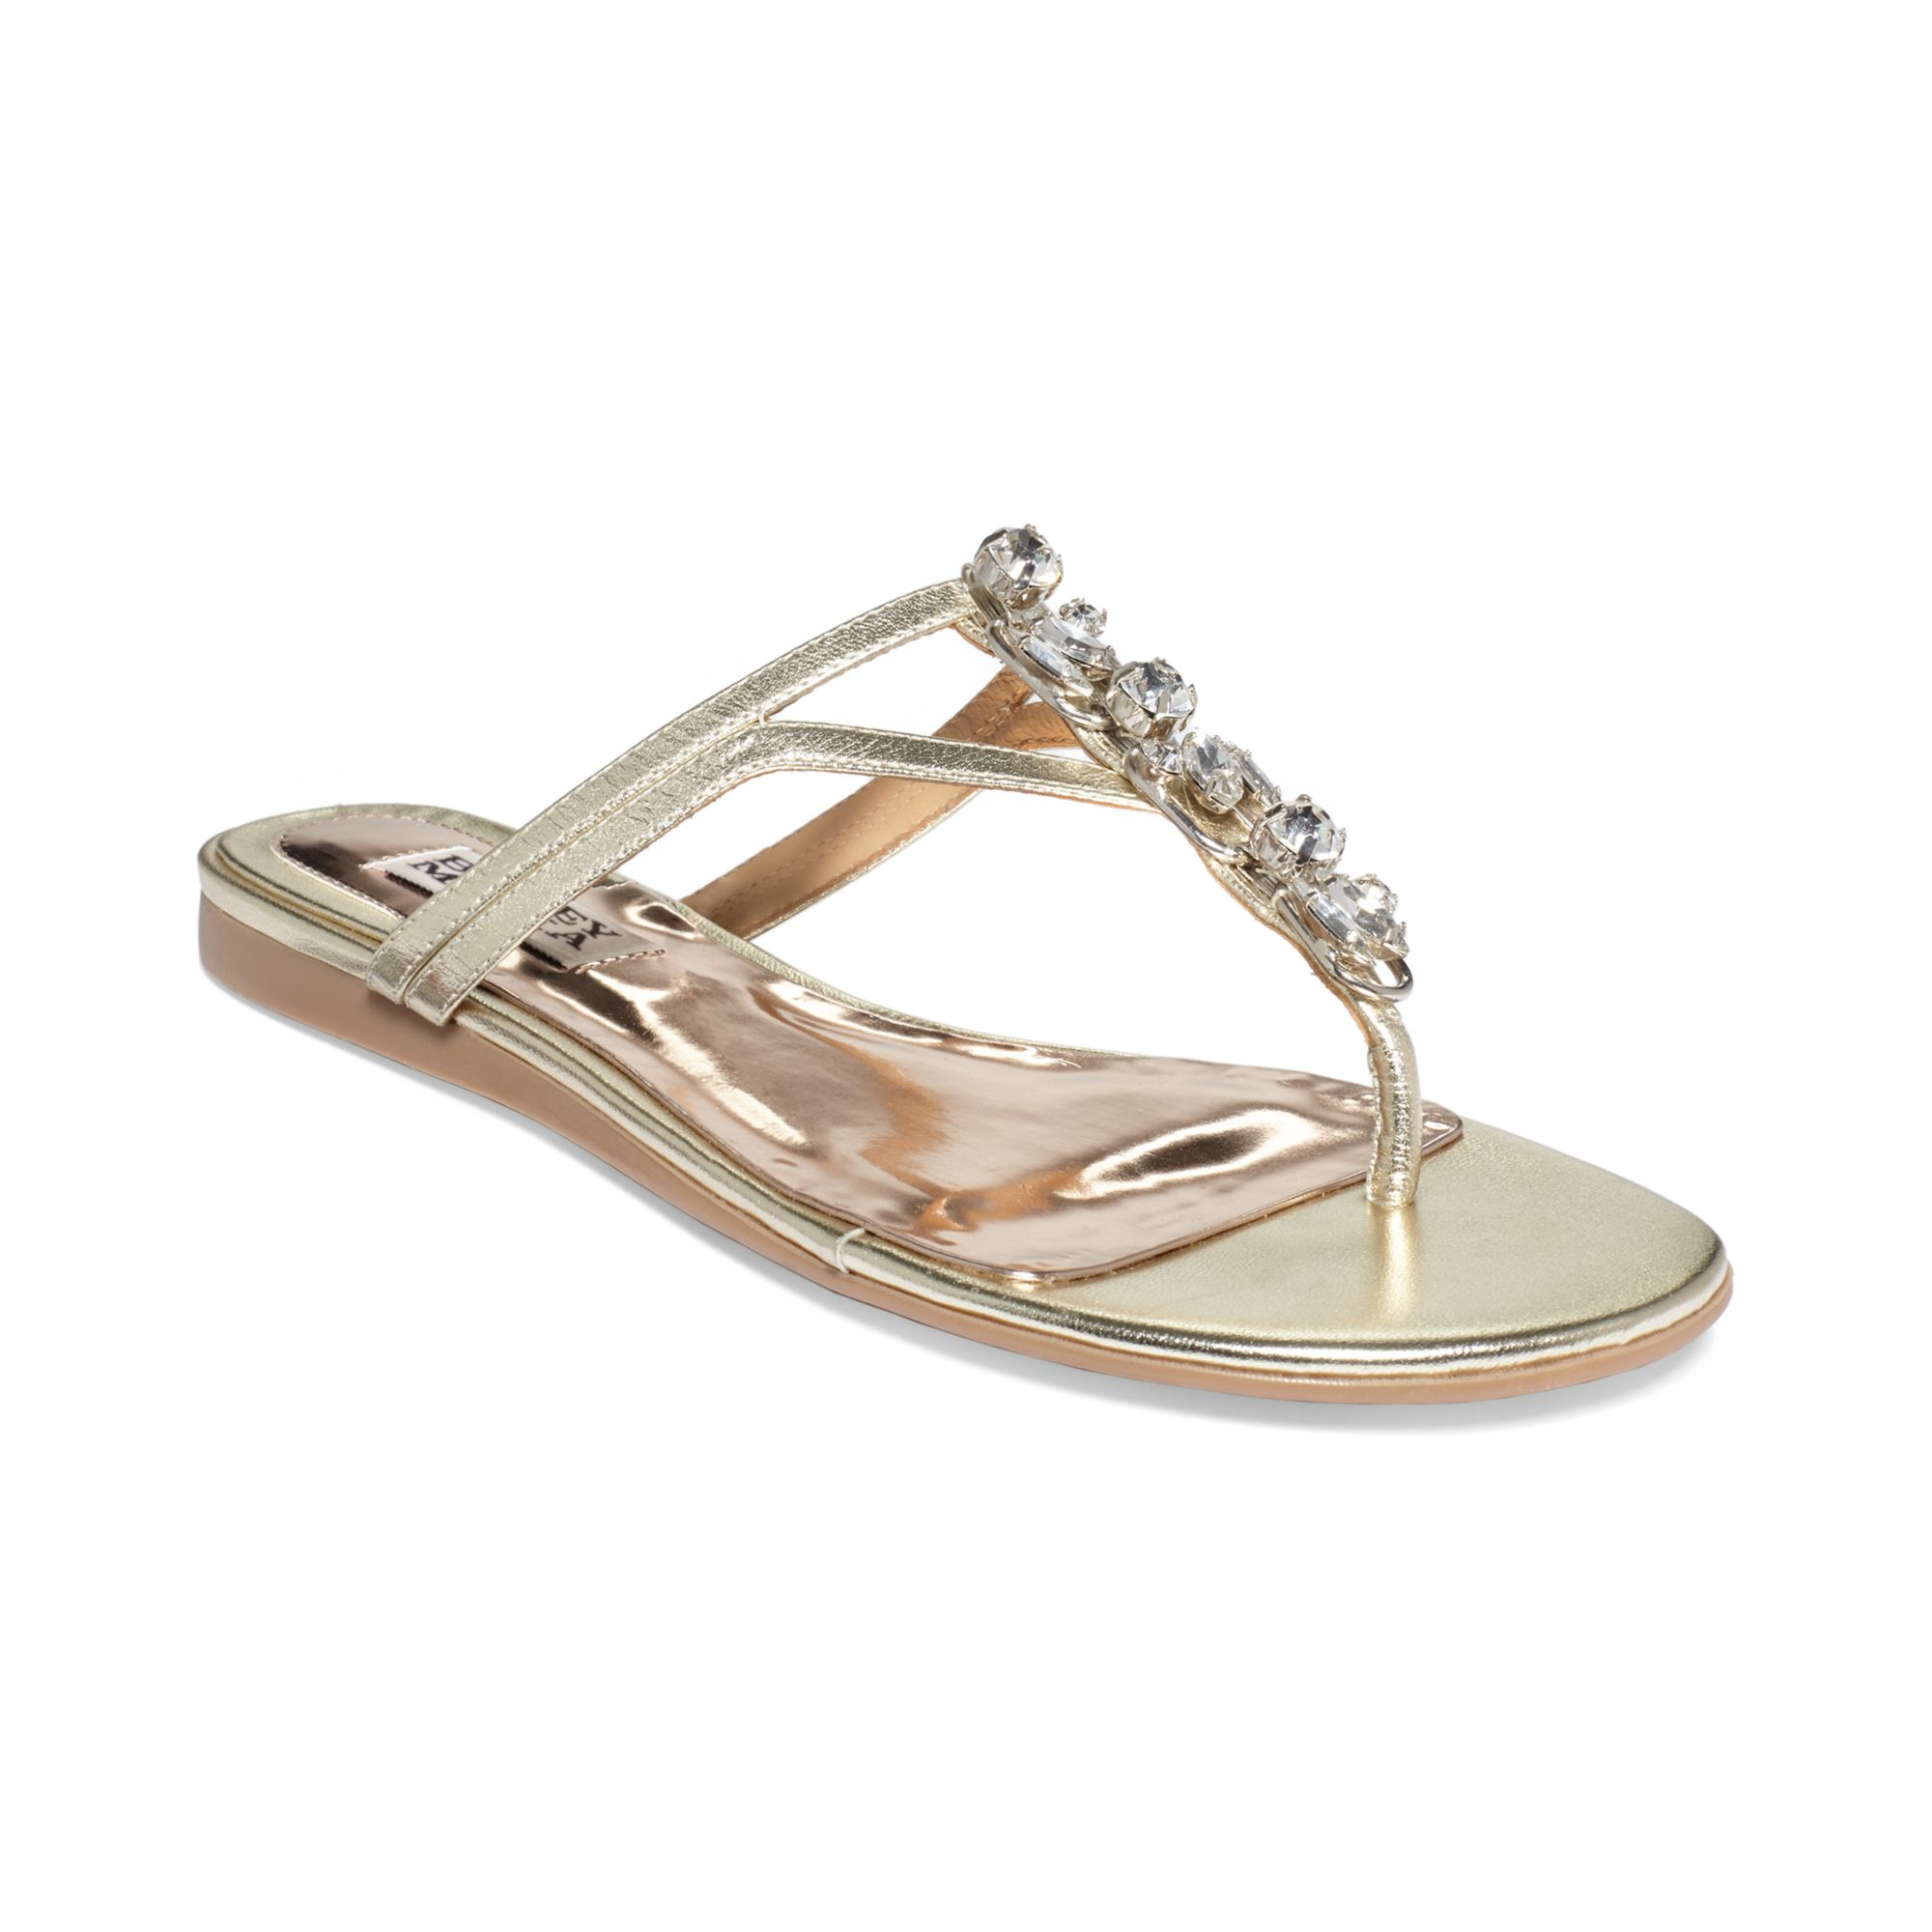 Badgley Mischka Kittie Jeweled Thong Sandals In Silver